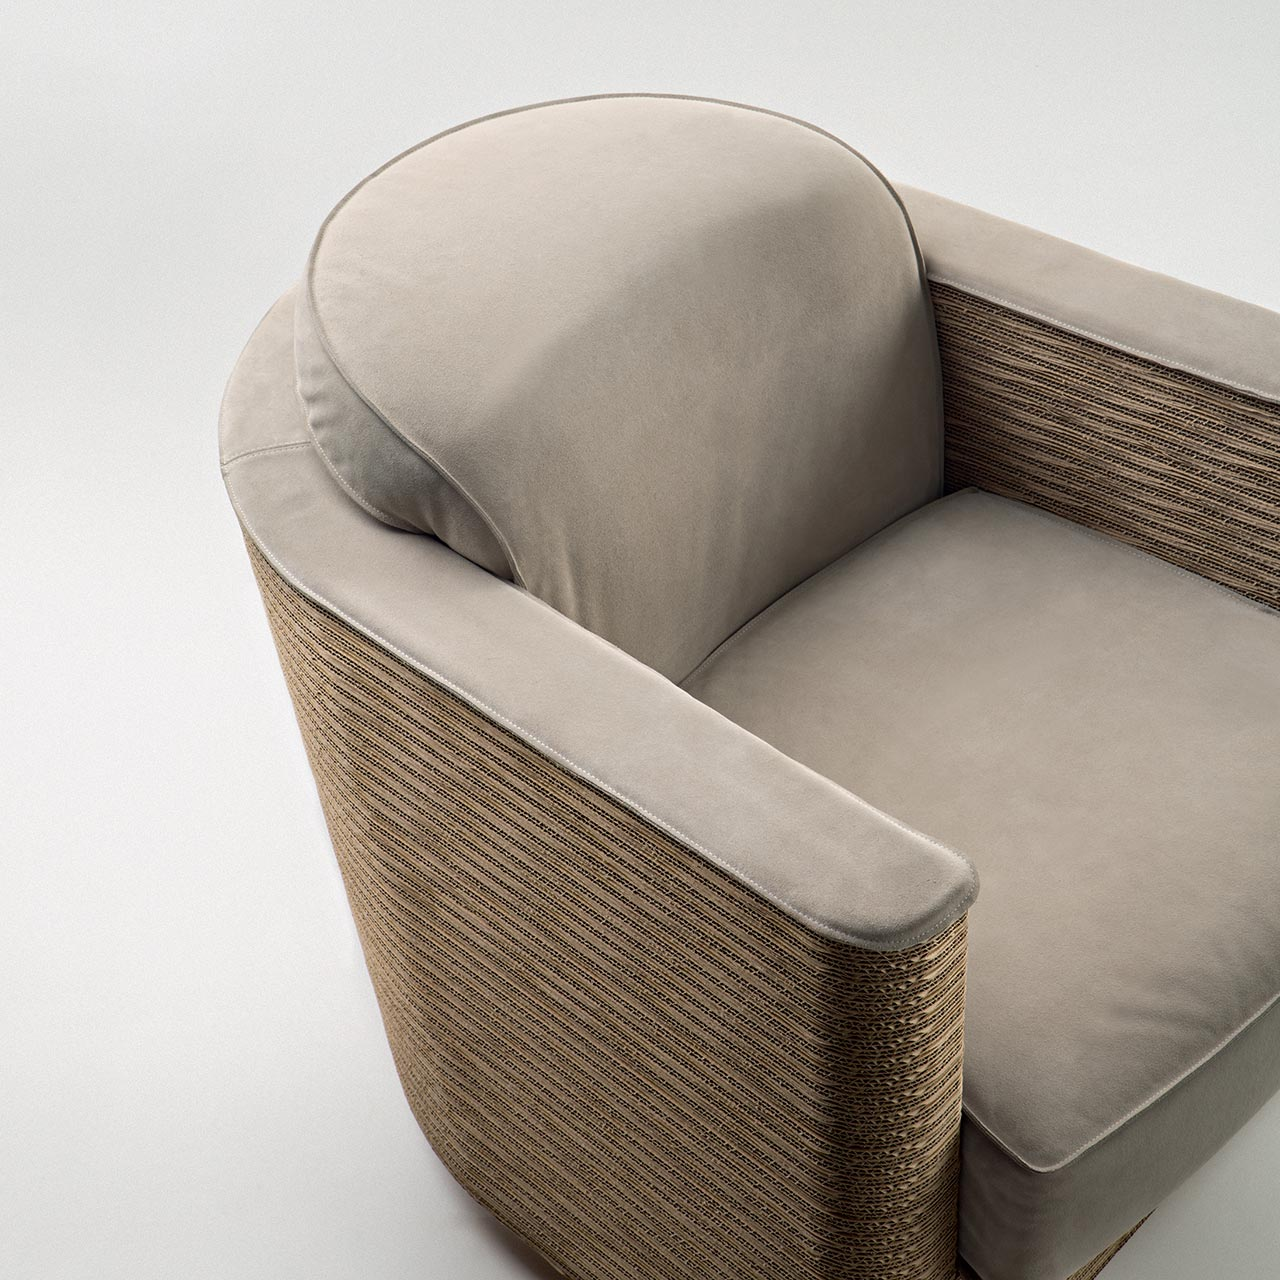 Staygreen, a design detail of Wendy armchair